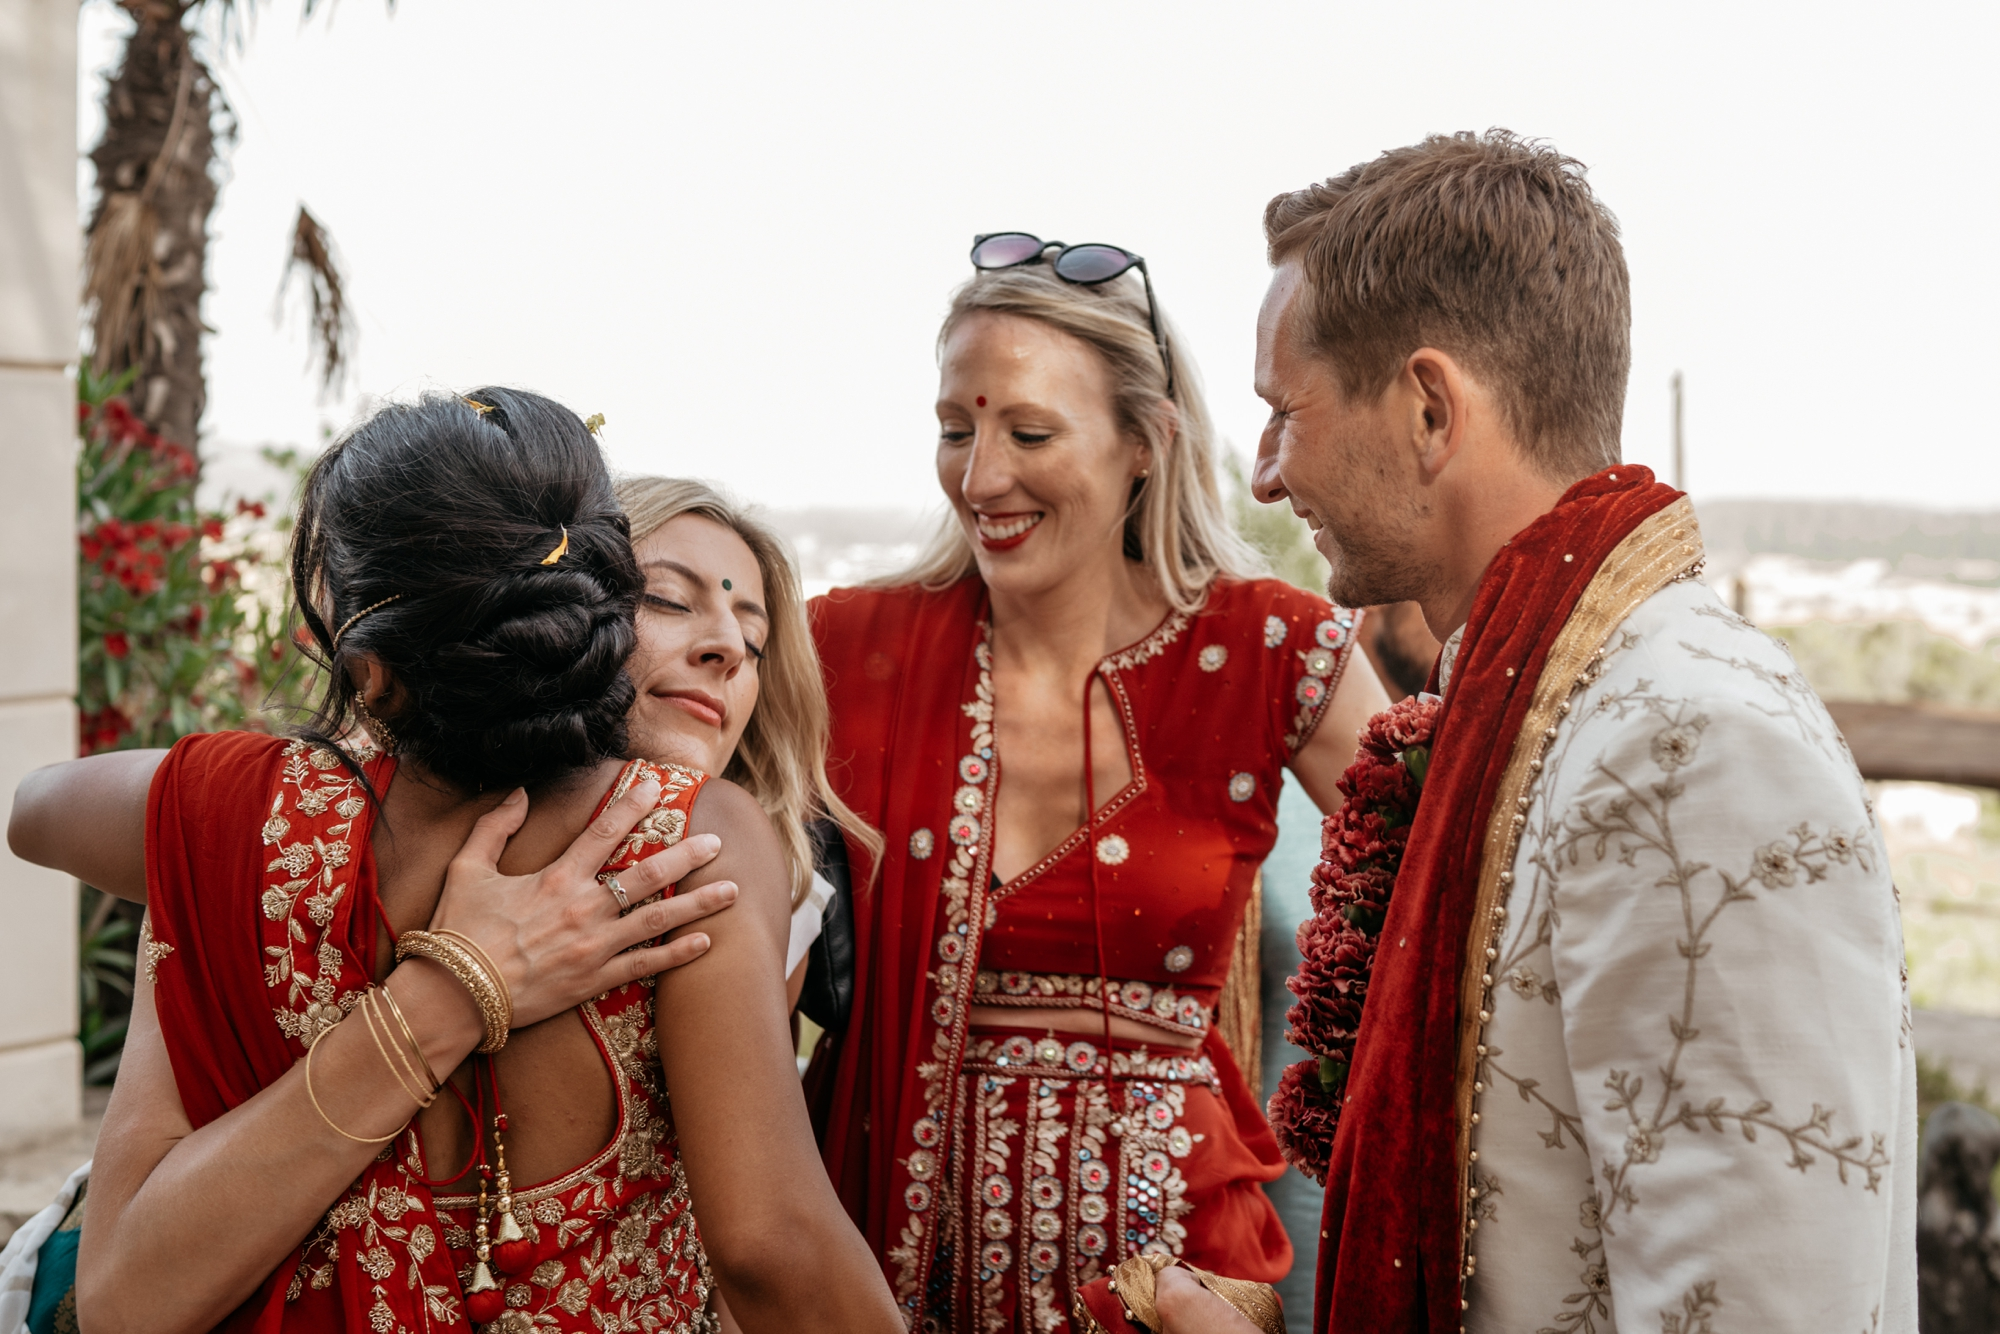 natural wedding photography mallorca boda hindu 0146 1